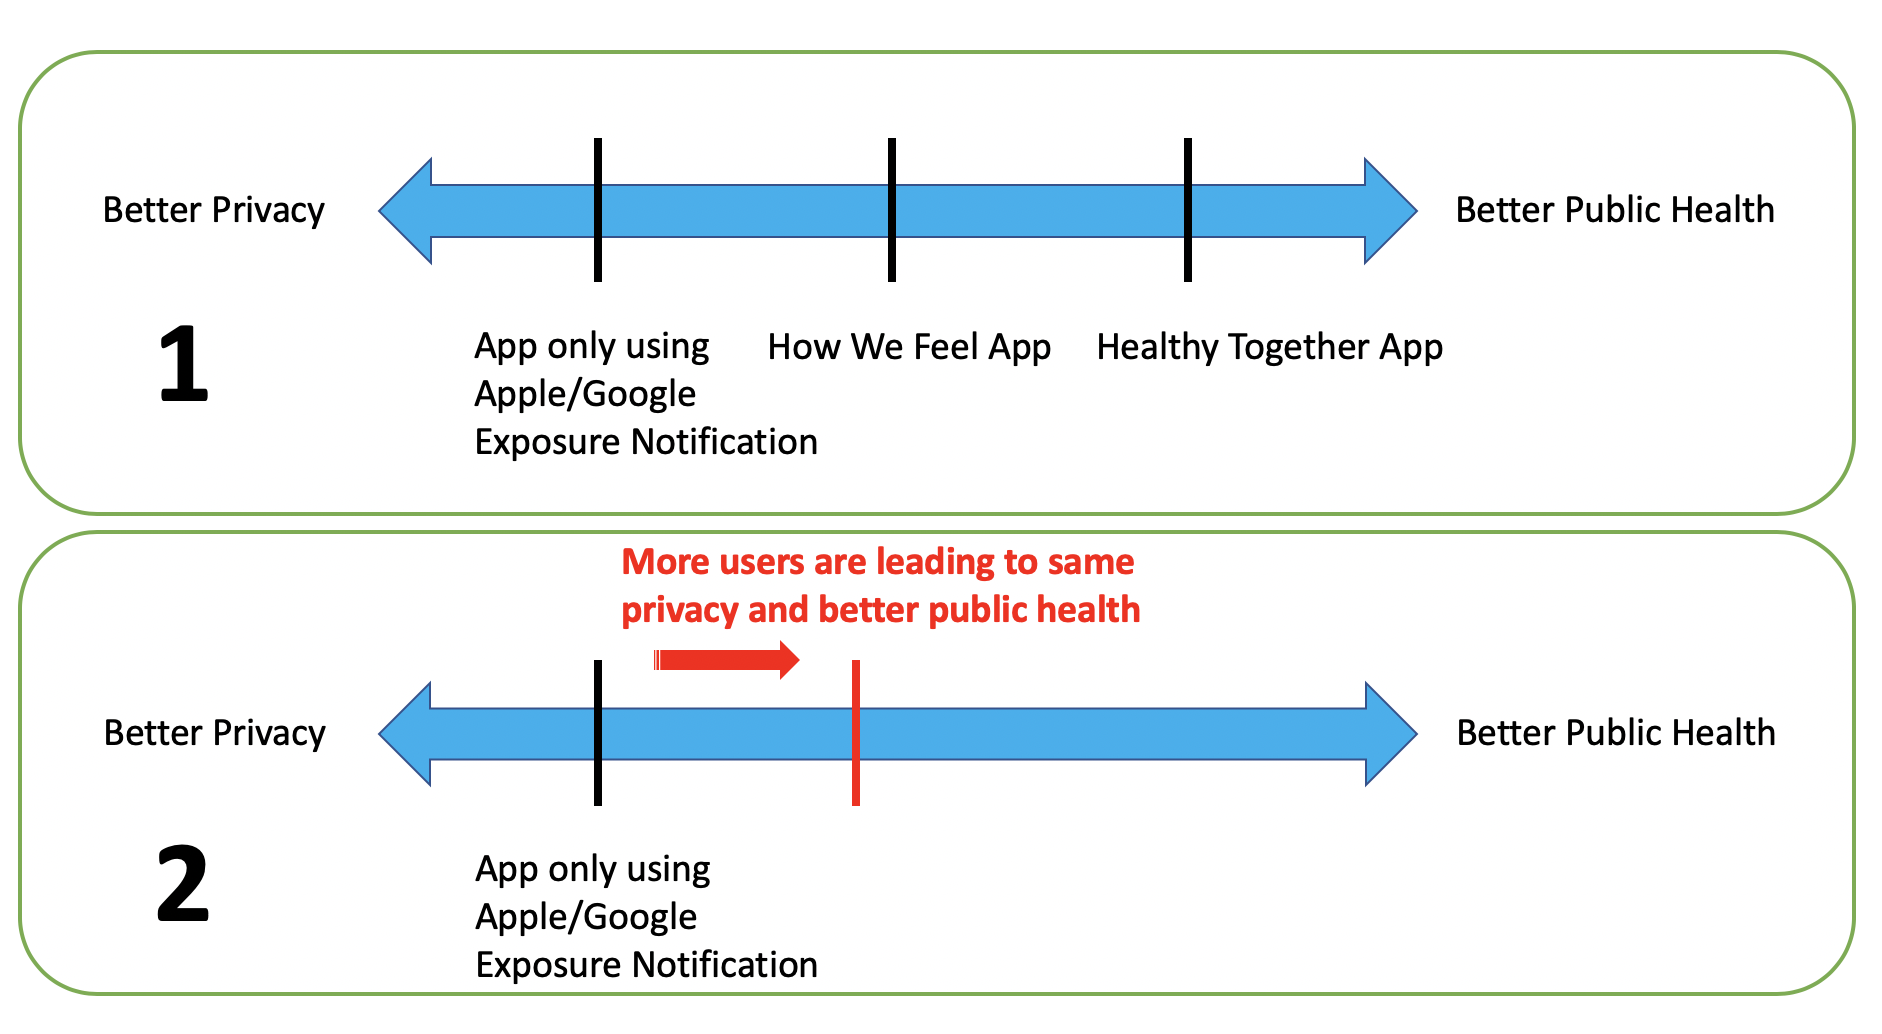 A diagram showing an increased level of public health at the same level of privacy if more people use Bluetooth tracing apps.